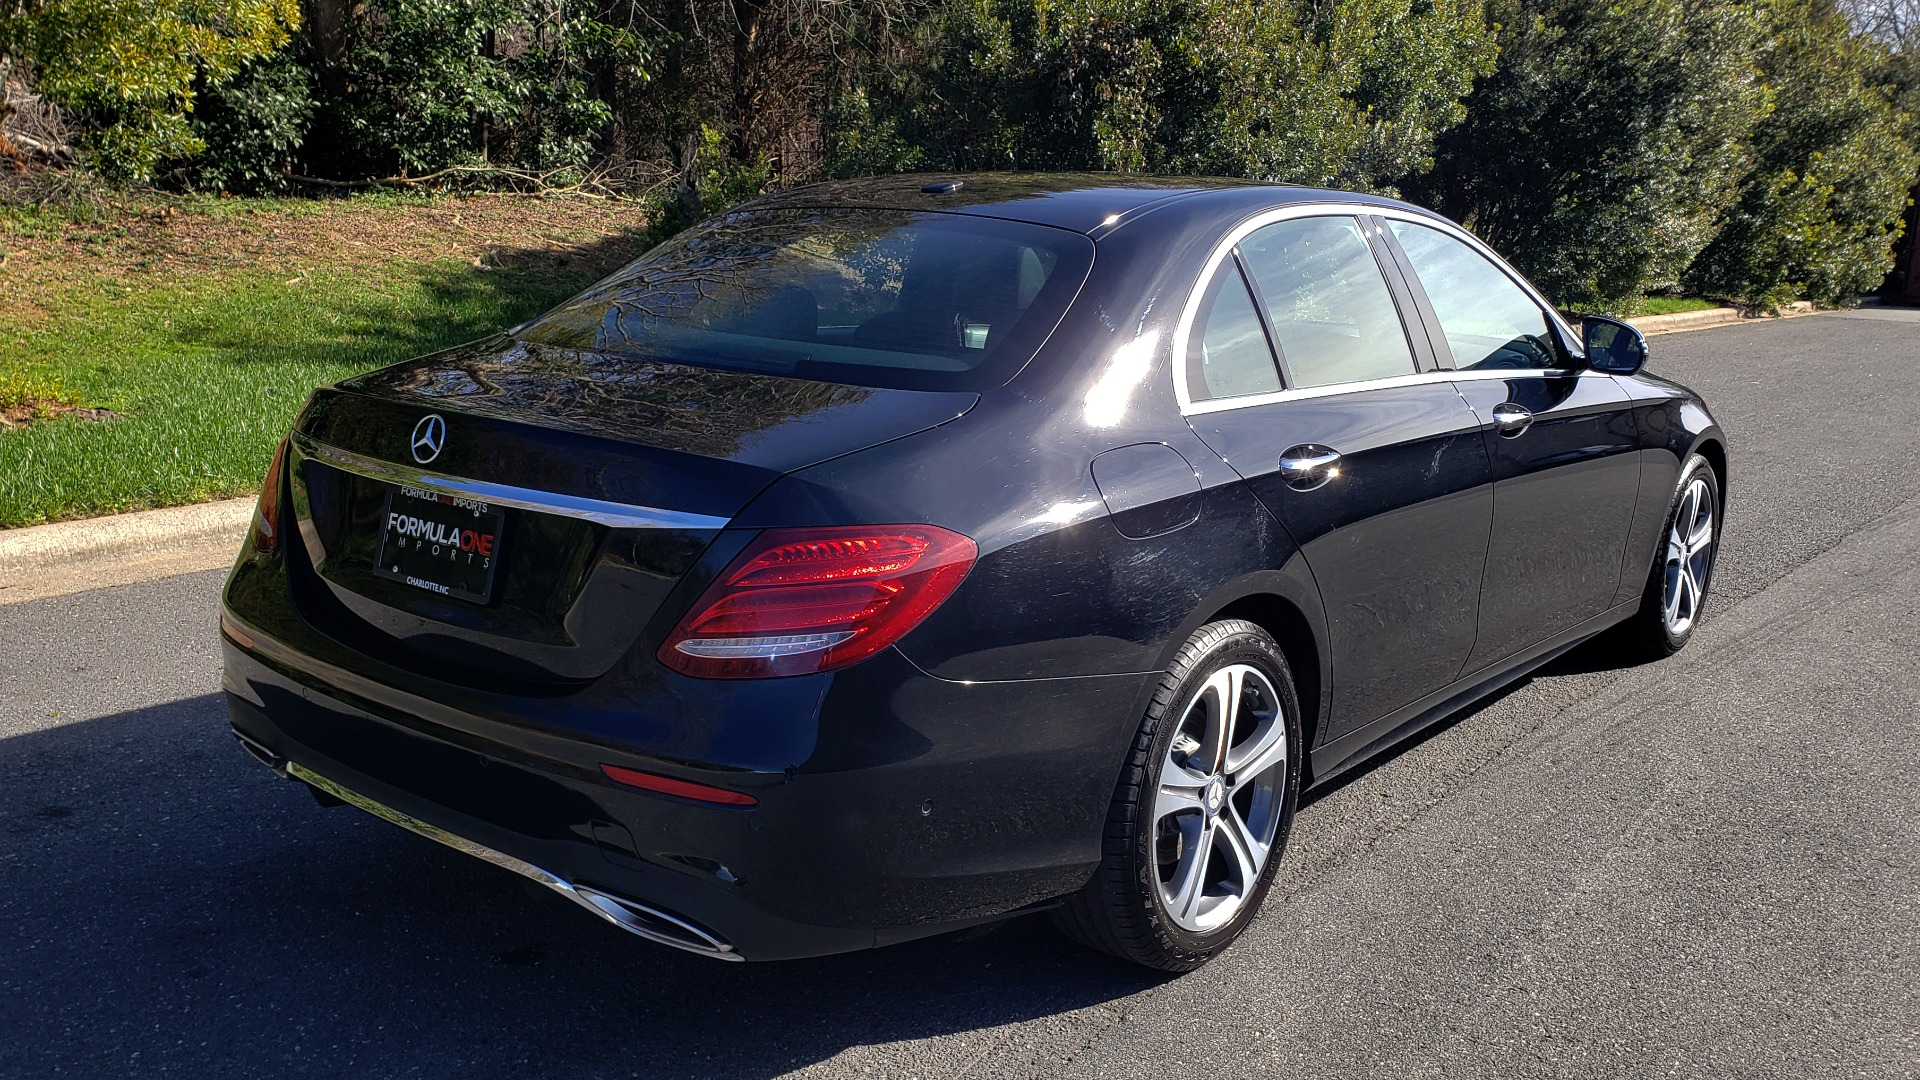 Used 2017 Mercedes-Benz E-CLASS E 300 PREMIUM / NAV / SUNROOF / BURMESTER / HTD STS / REARVIEW for sale Sold at Formula Imports in Charlotte NC 28227 6